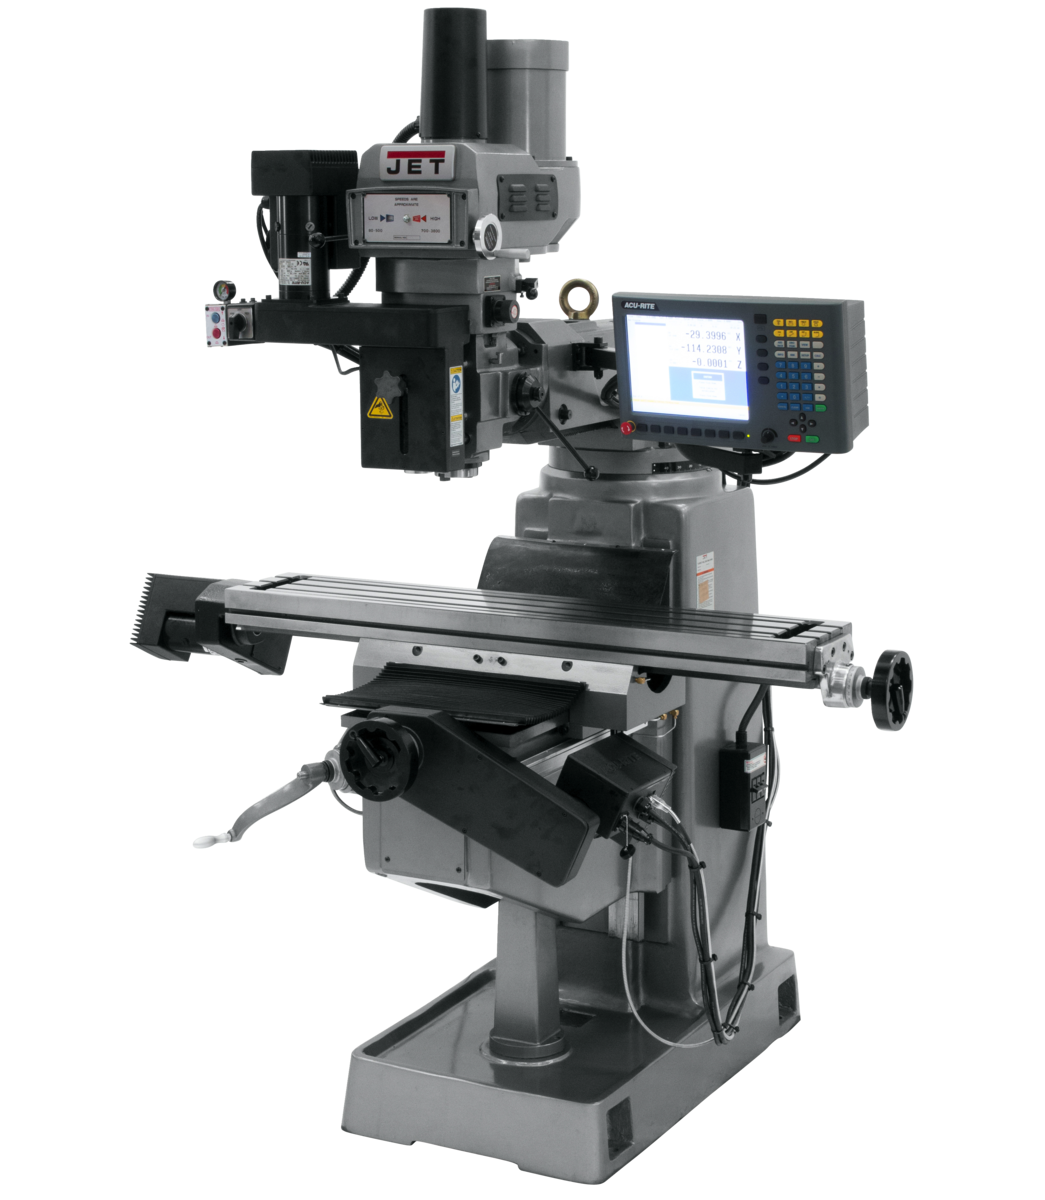 JTM-4VS Mill With 2-Axis ACU-RITE G-2 MILLPWR CNC